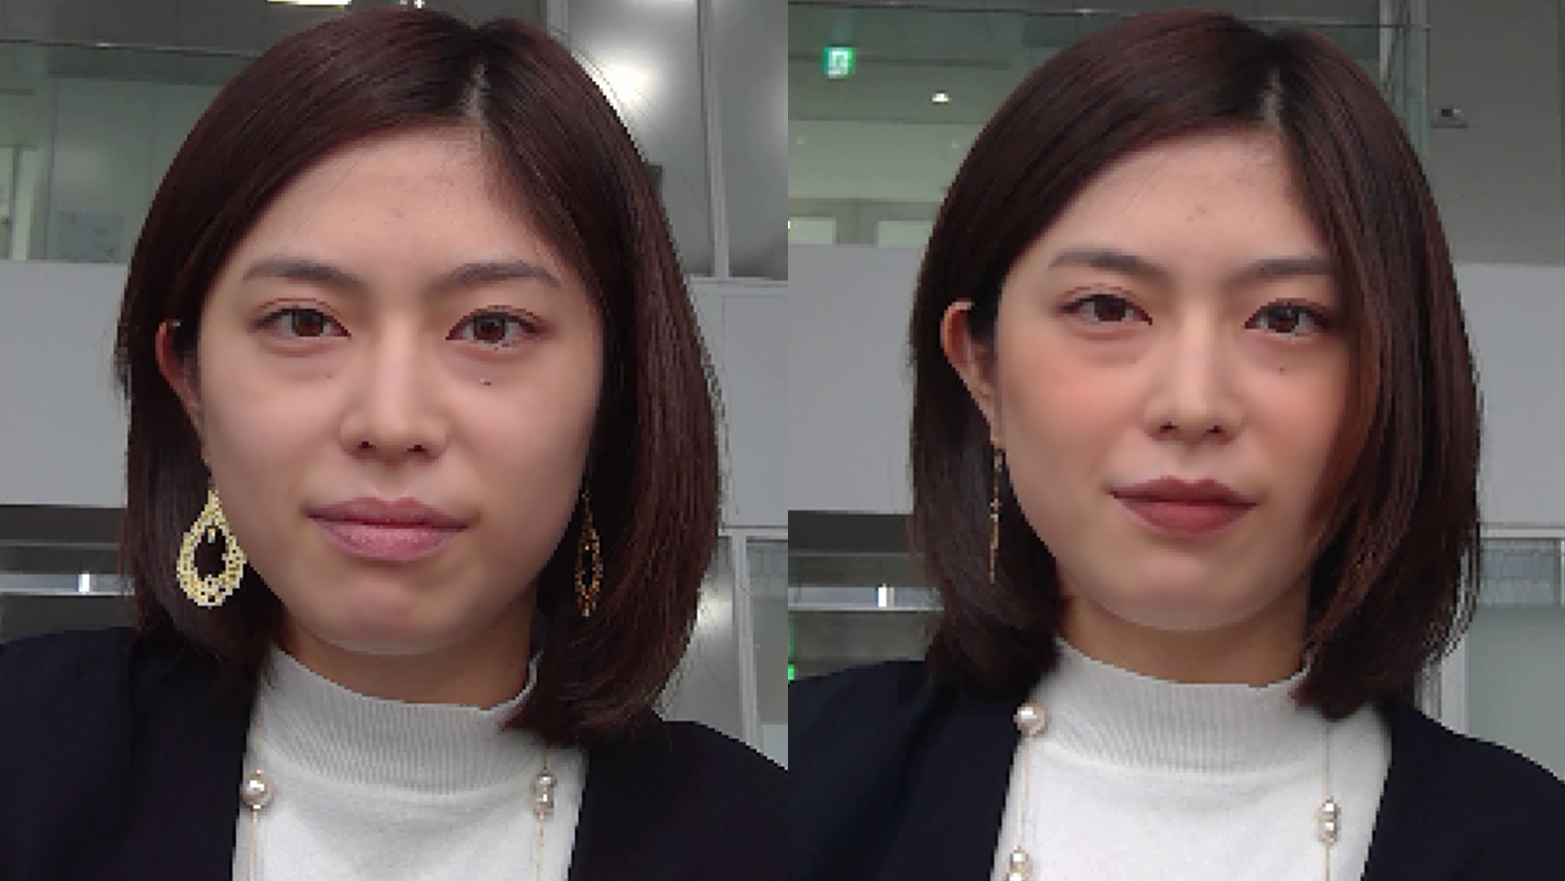 Before/after photos of woman using Shiseido's app